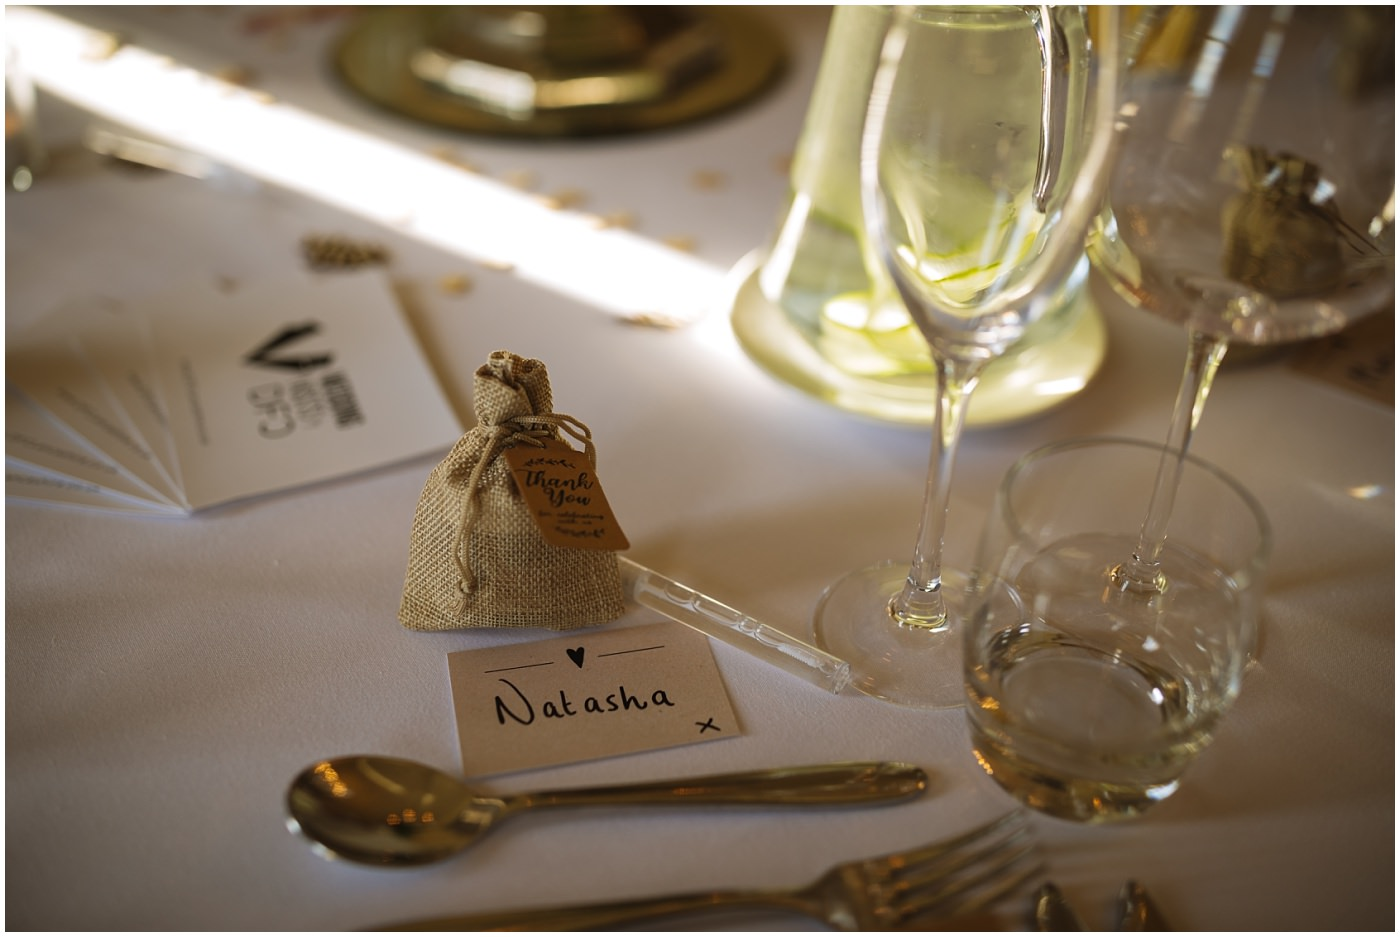 Hessian wedding favour bags and table setting inspiration